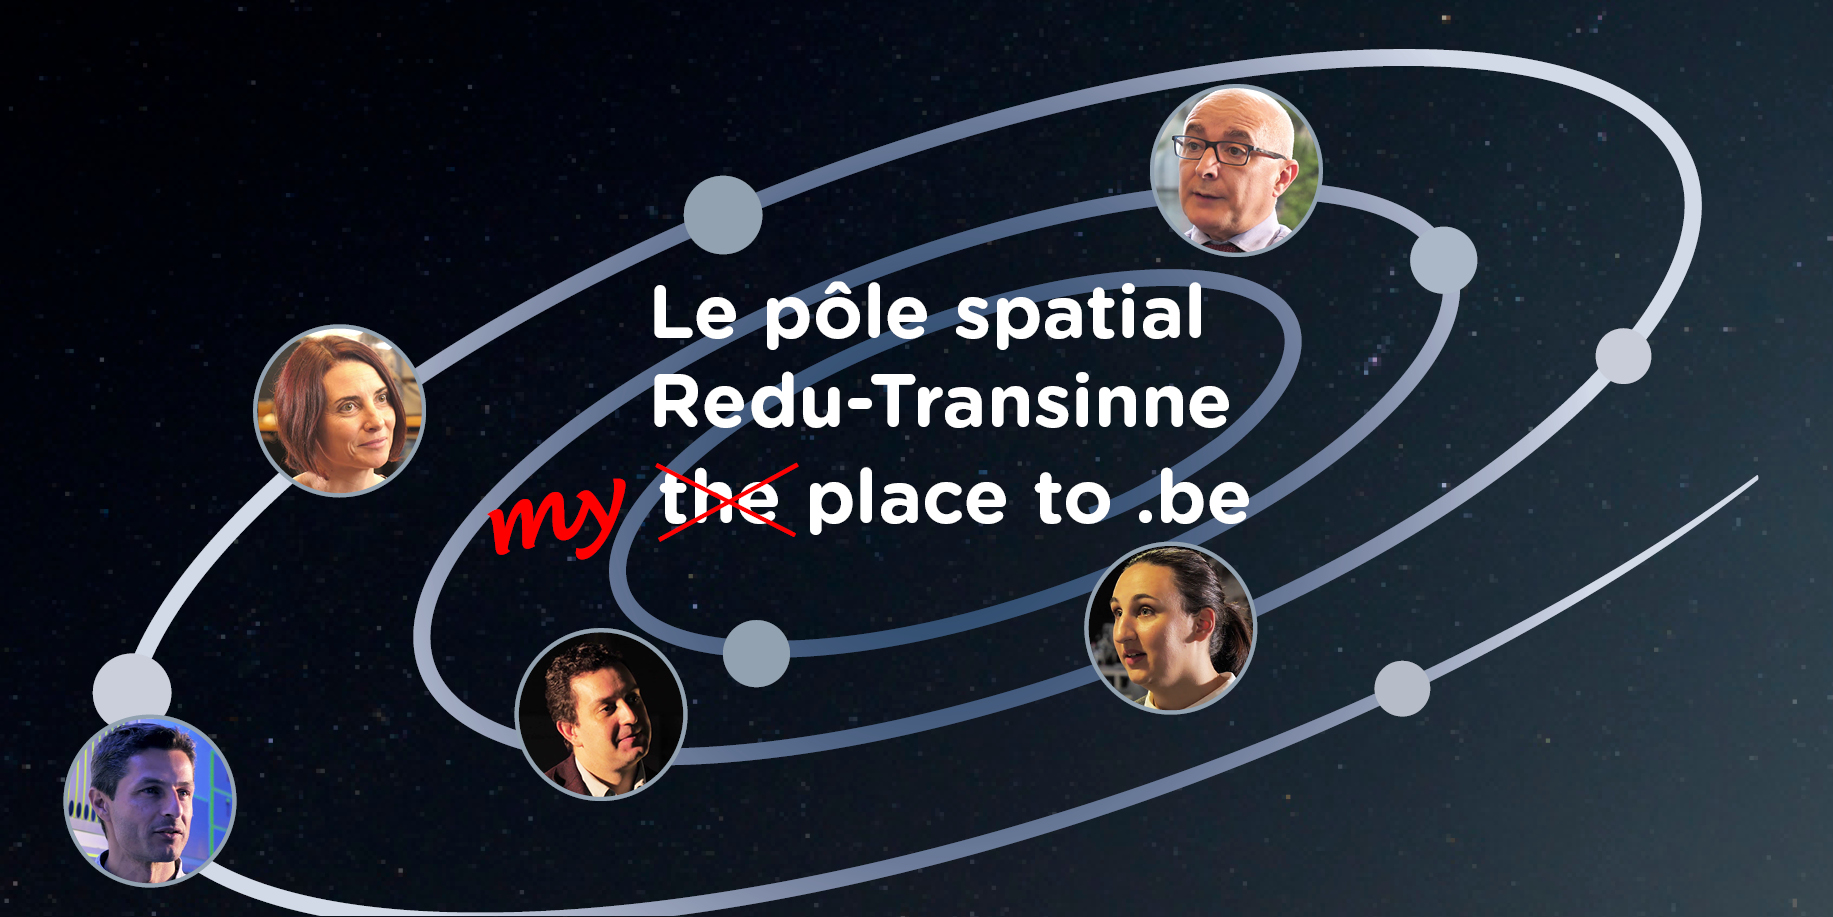 Le pôle spatial Redu-Transinne : my place to be !